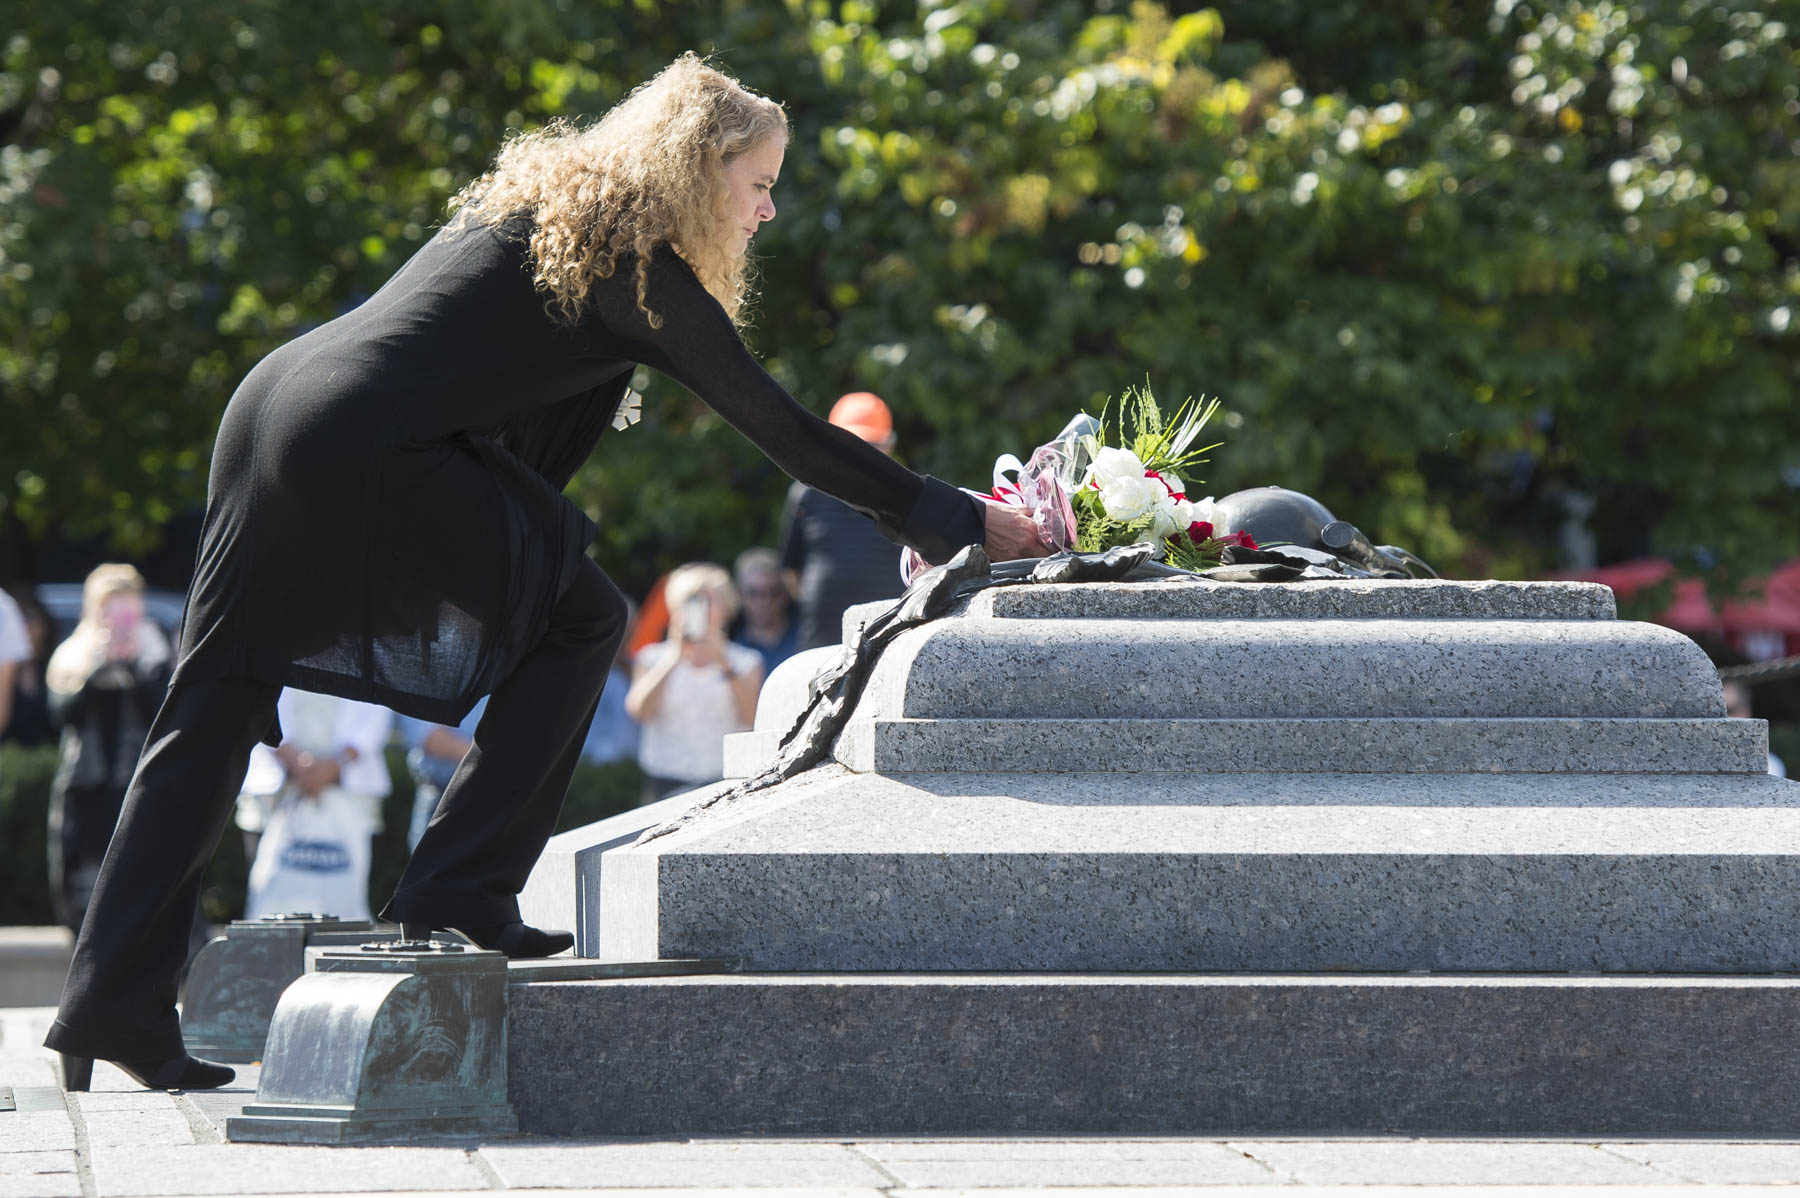 Her Excellency layed flowers at the Tomb of the Unknown Soldier to honour and remember Canadians who lost their lives fighting on behalf of their country.